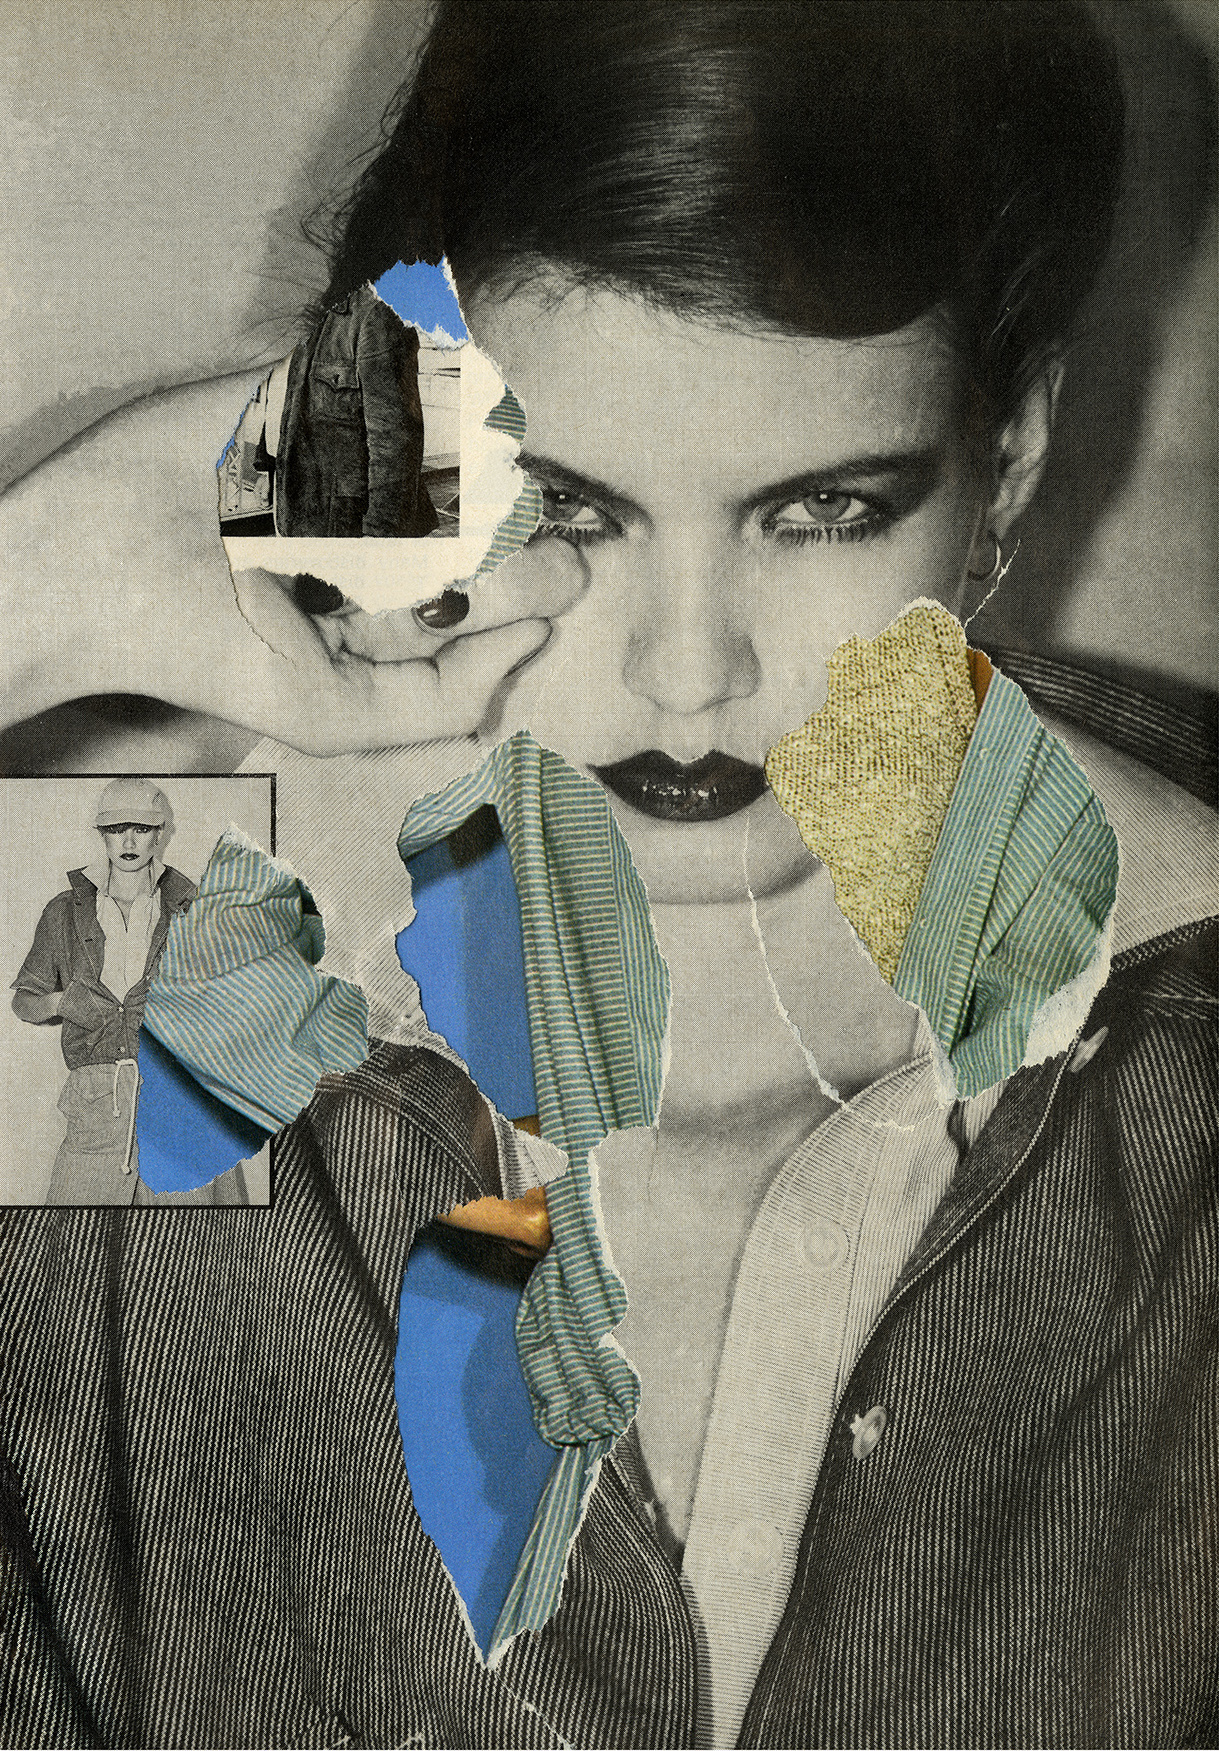 Secondary Collage [2] by Ehryn Torrell